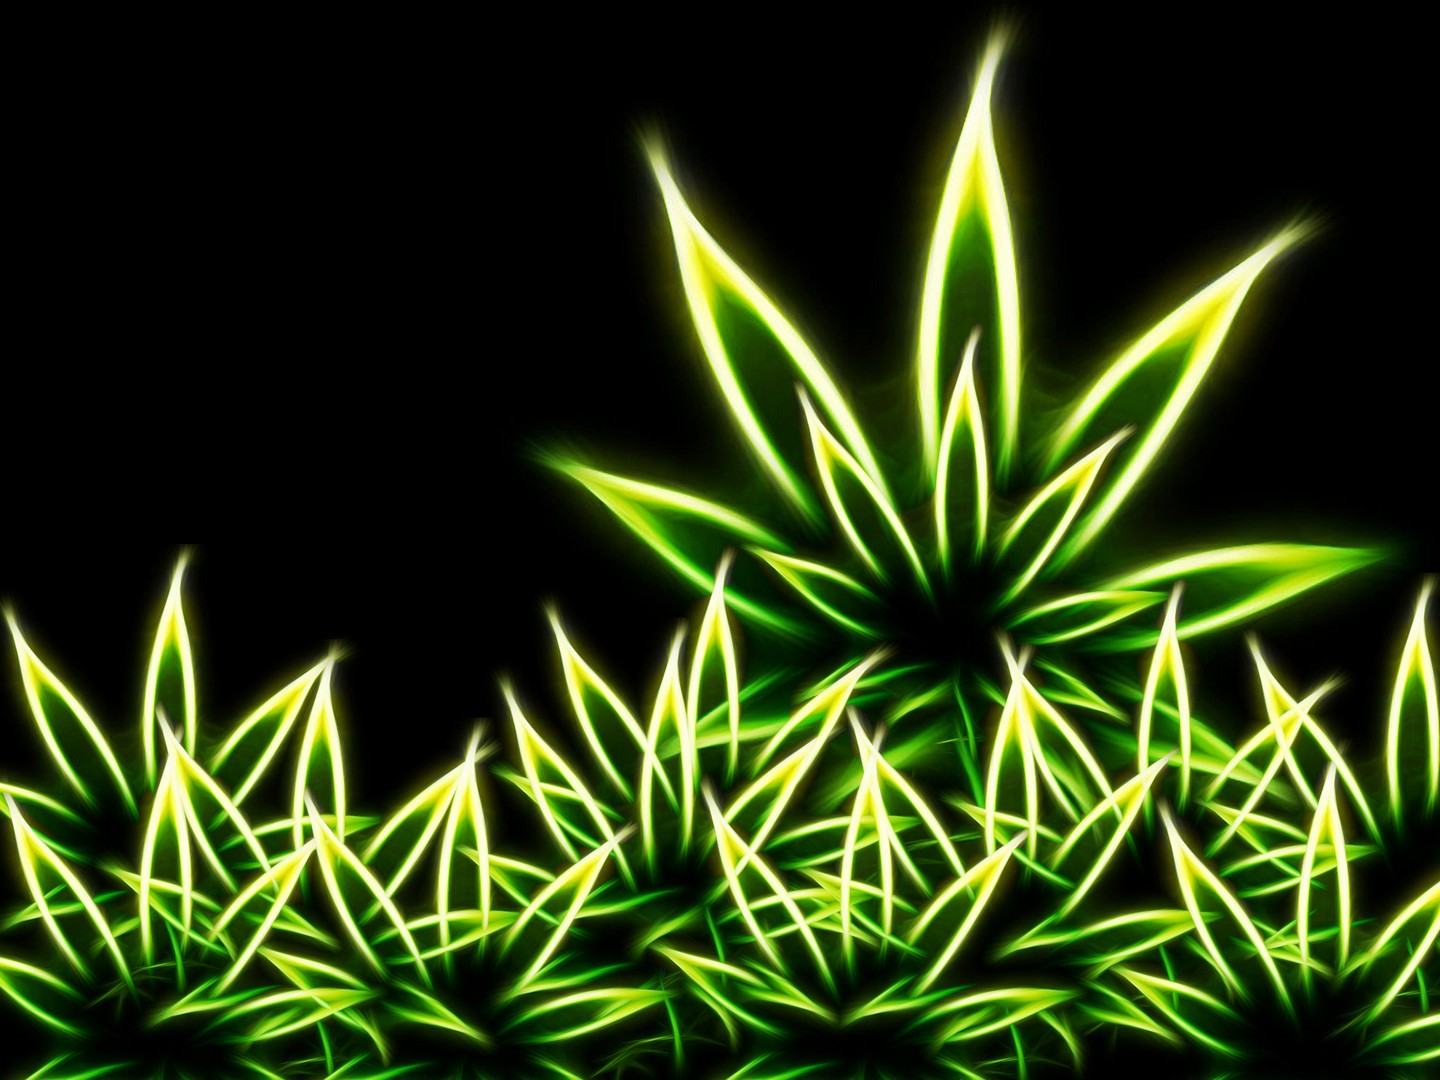 Description Weed Wallpaper is a hi res Wallpaper for pc desktops 1440x1080